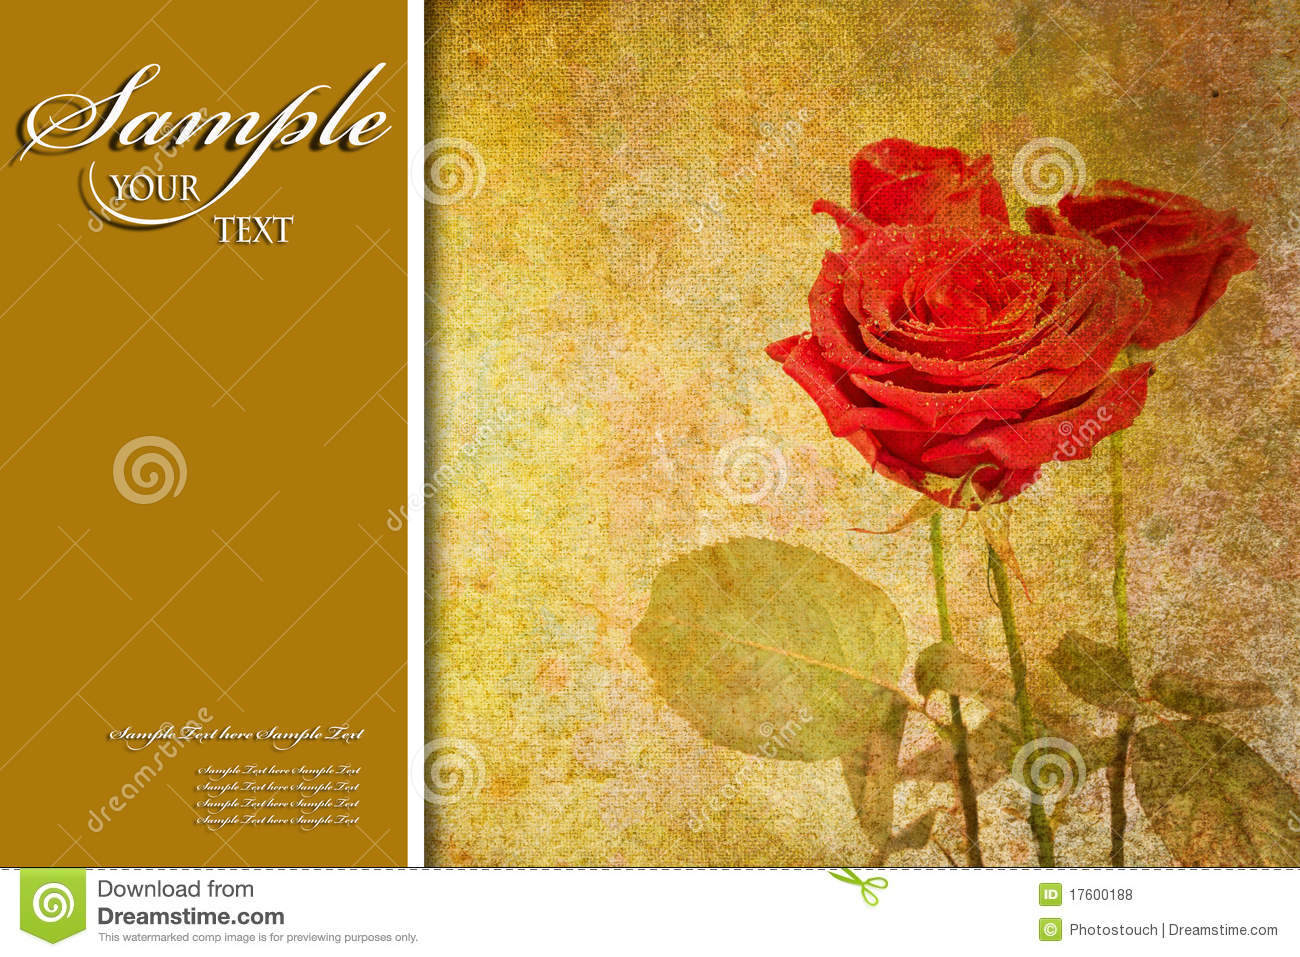 Book Cover Background Color ~ Color background for card or book cover royalty free stock